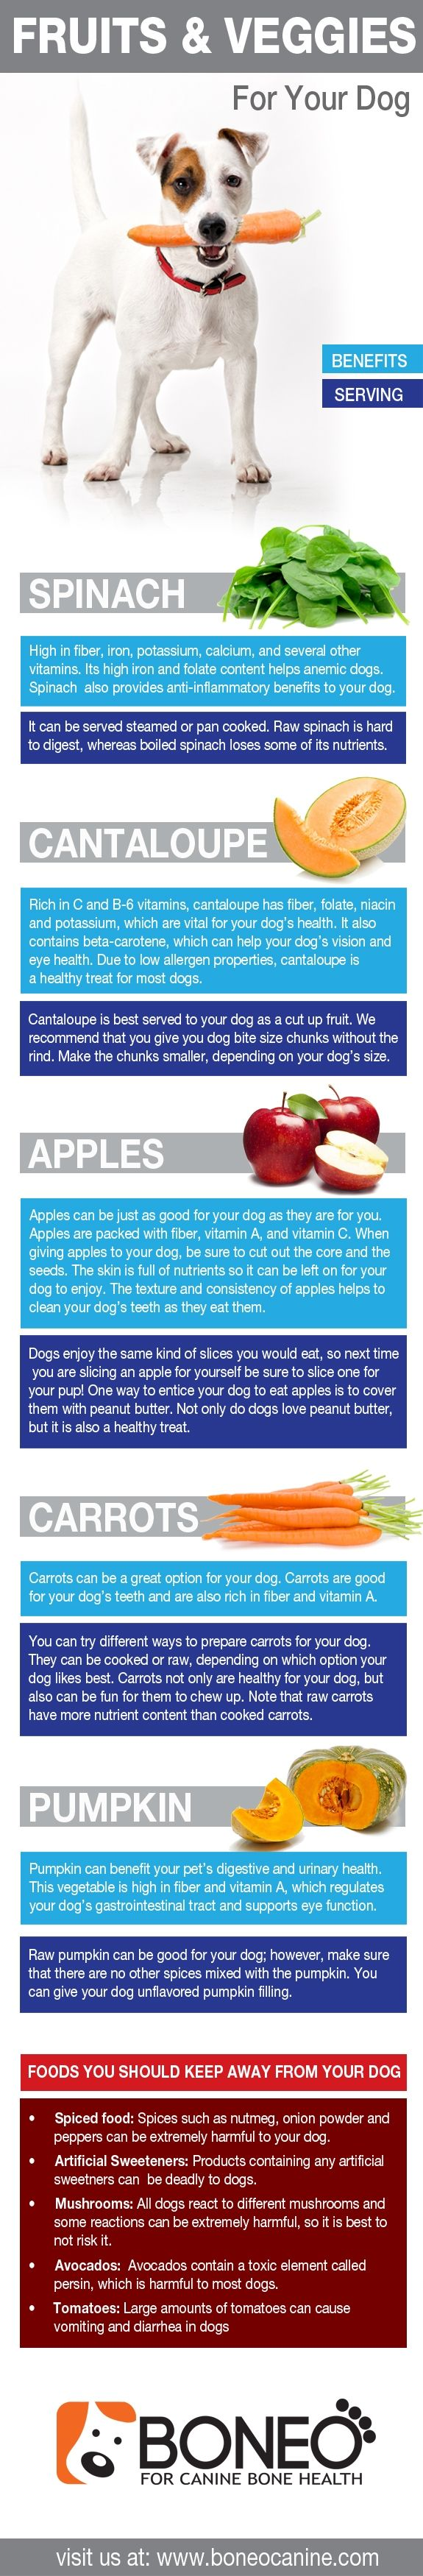 Dog infographic about healthy fruits and vegetables to give to your dog.